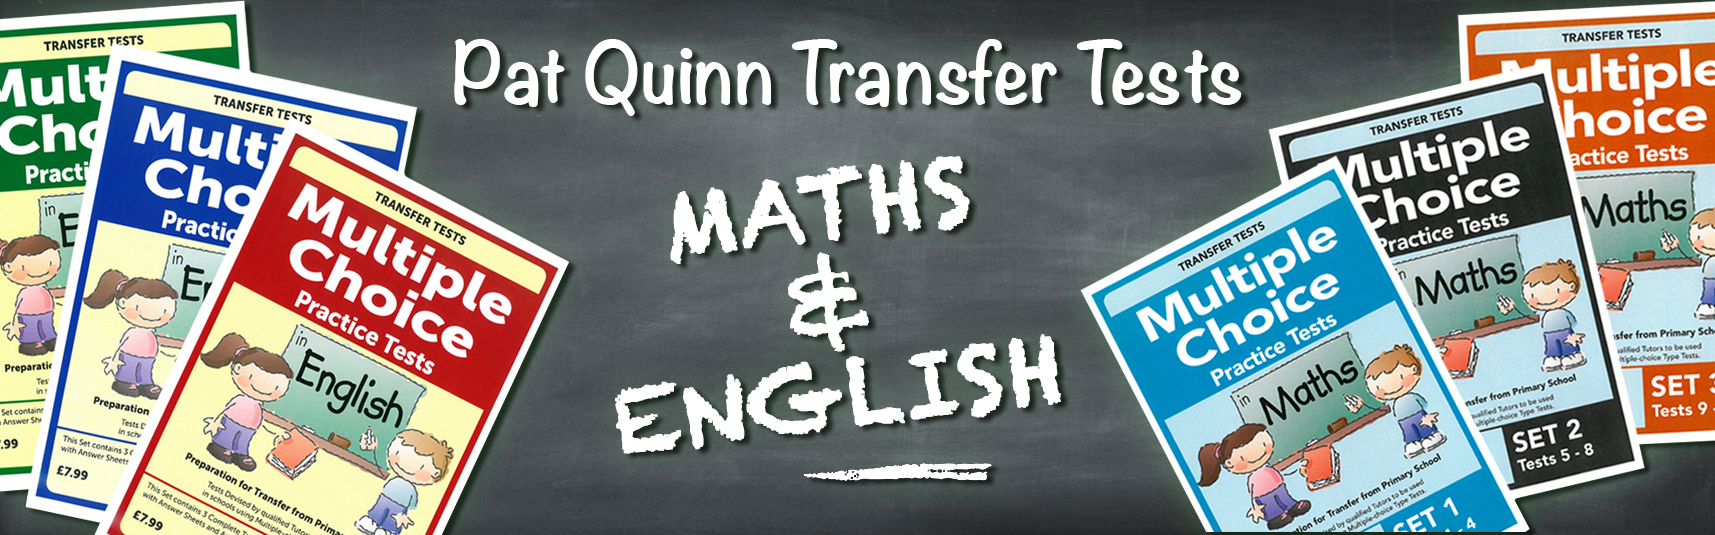 Pat Quinn Transfer Practice Tests